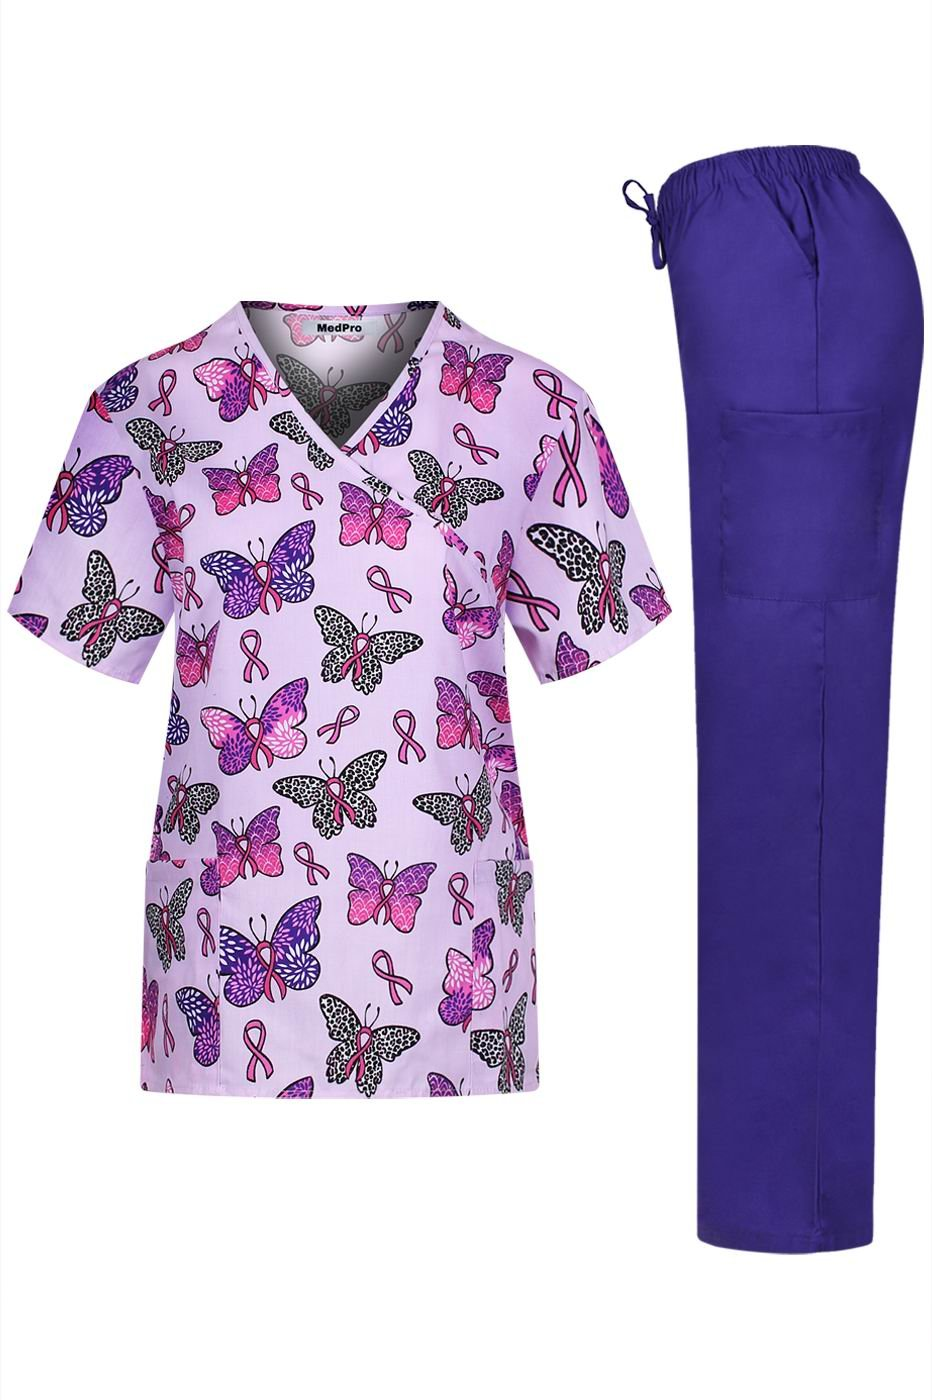 MedPro Women's Medical Scrub Set with Printed Top and Cargo Pants Pink Purple L by MedPro (Image #1)